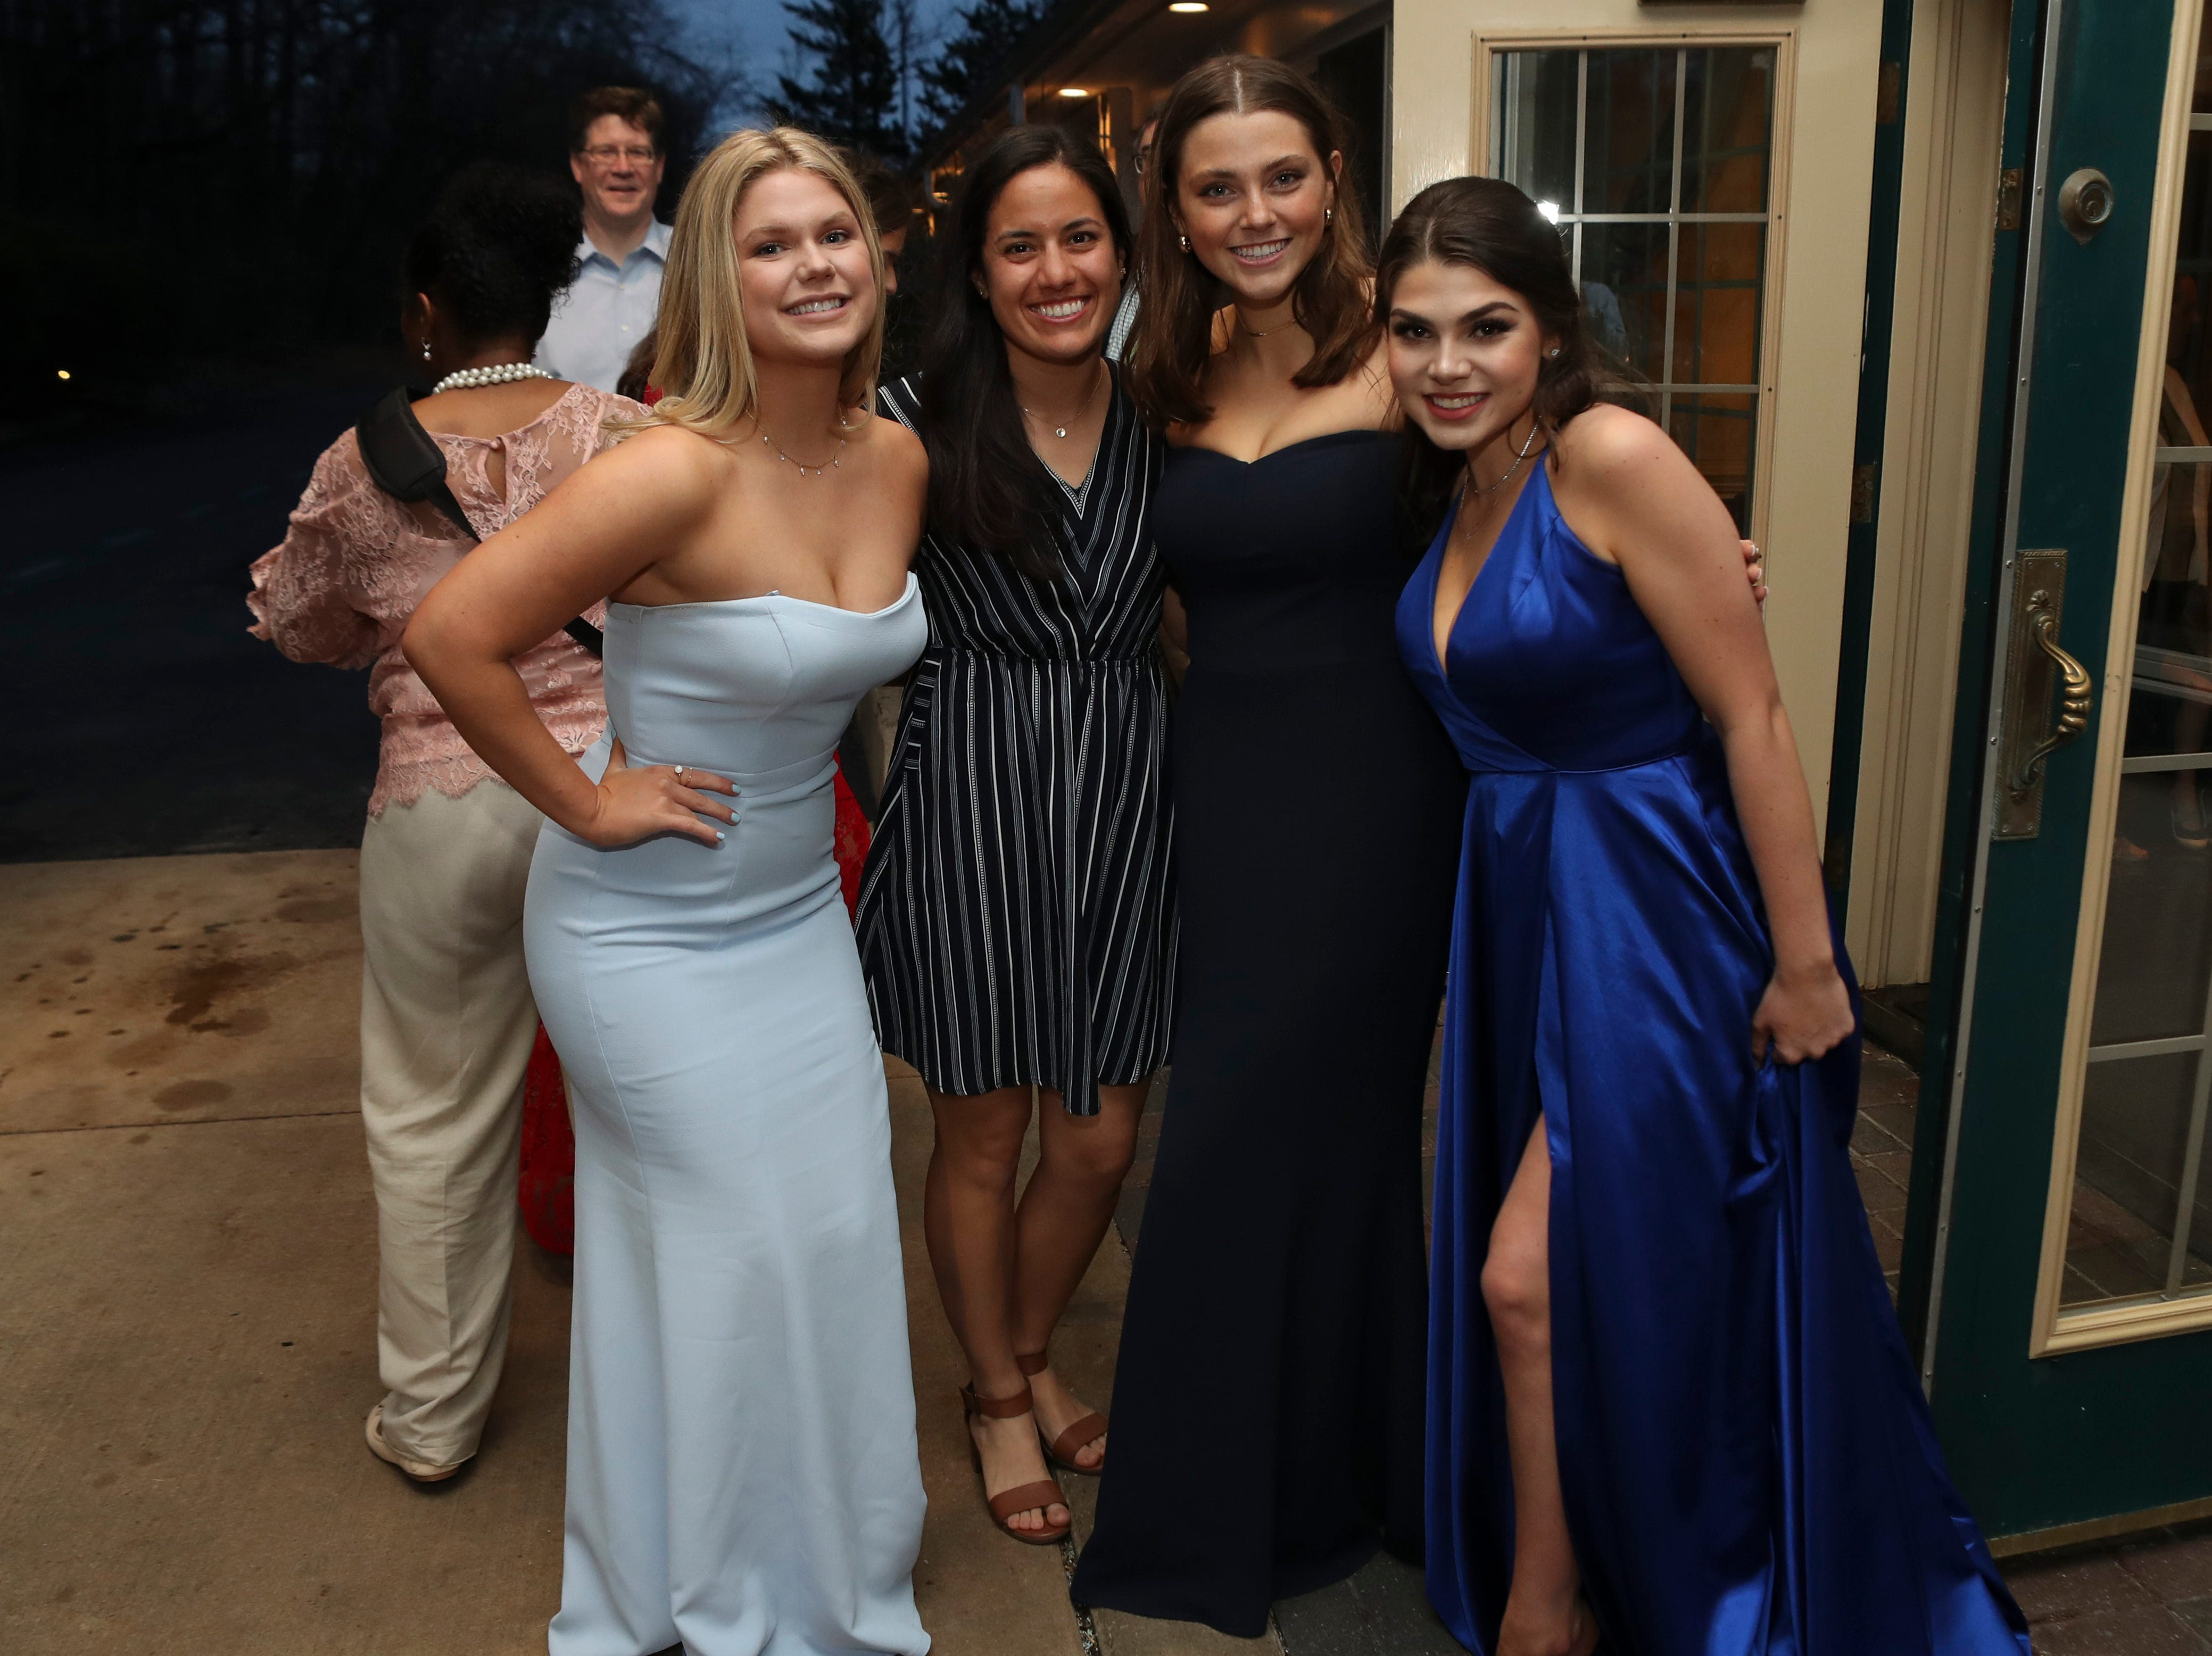 Students and guests arrive at Tatnall School's prom at the Mendenhall Inn Saturday, April 13, 2019.